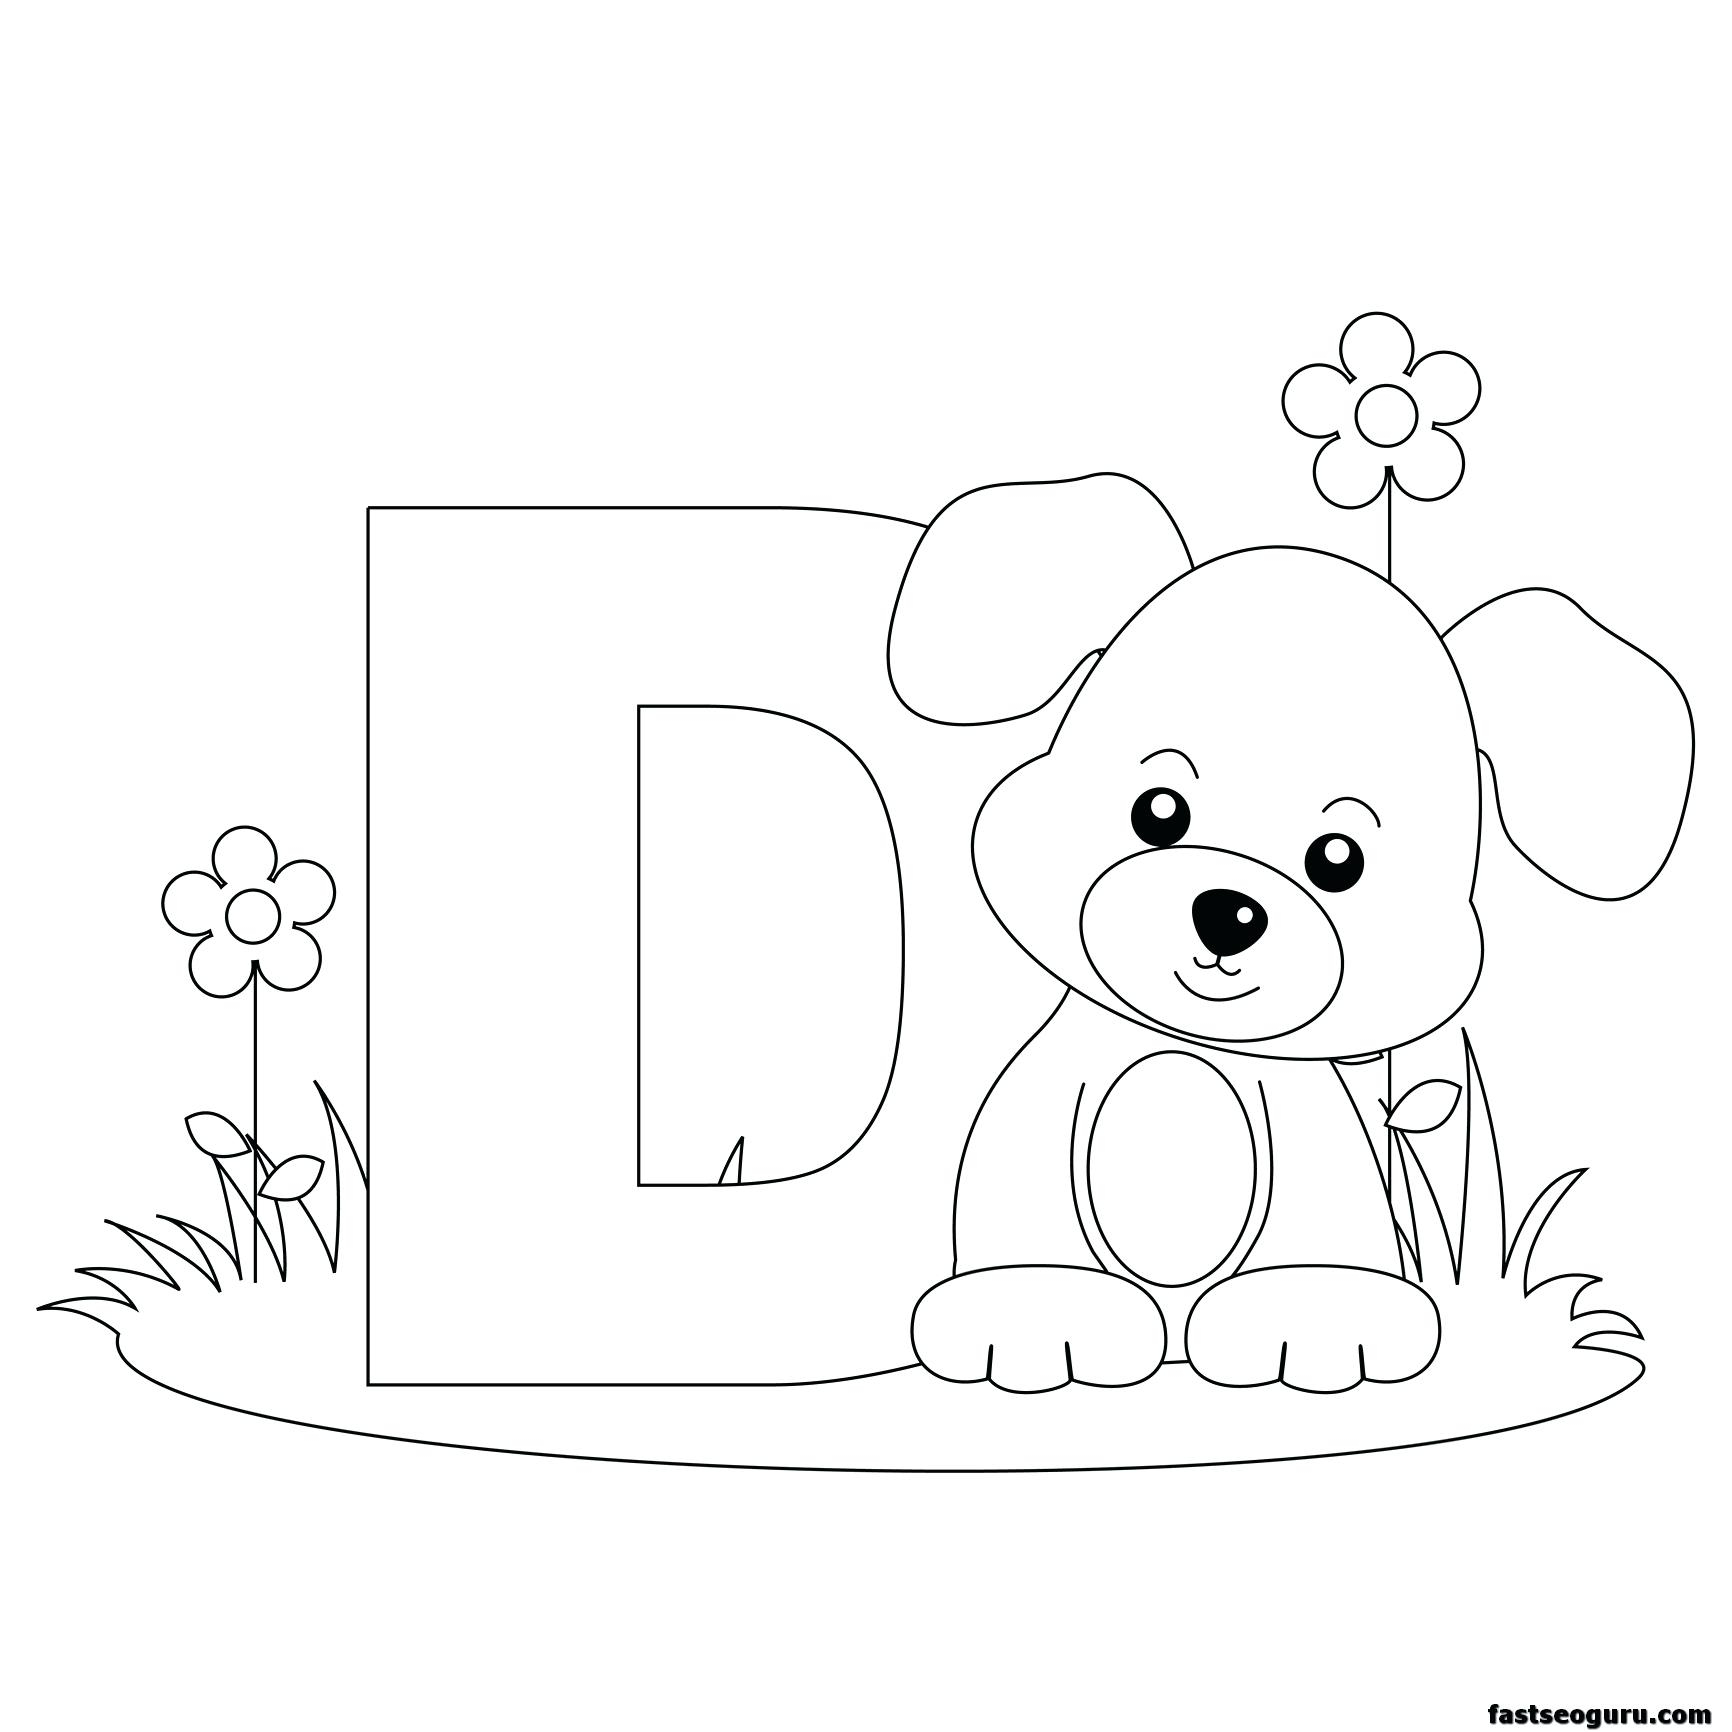 Get The Free Printable Alphabet Coloring Pages For Kids Of Animals - Free Printable Preschool Alphabet Coloring Pages